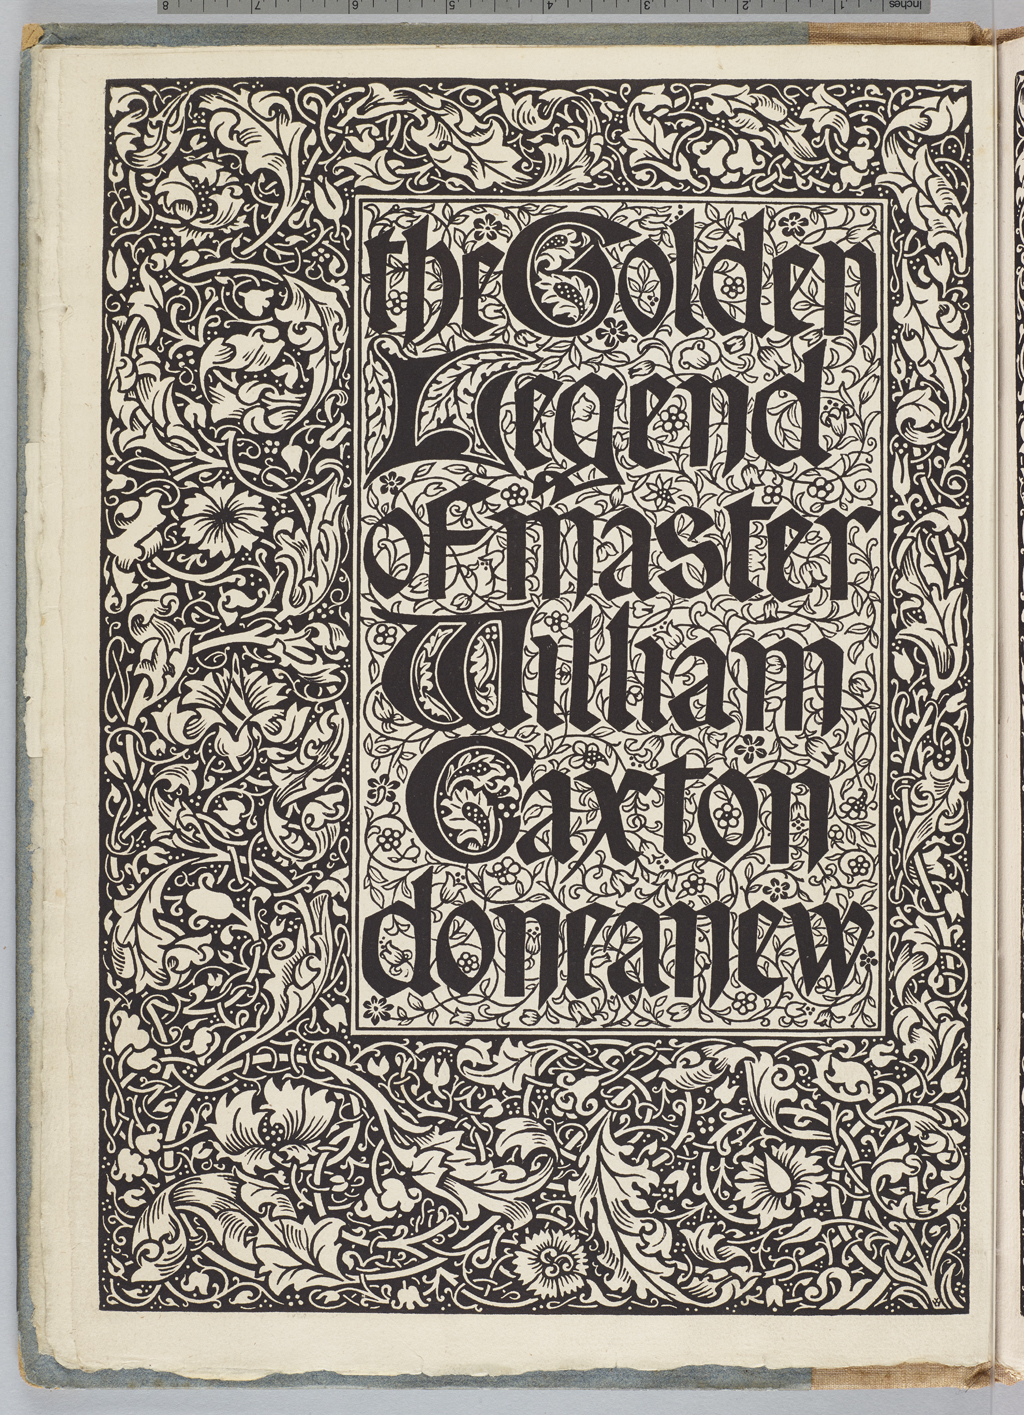 The Golden Legend of Master William Caxton Done Anew. (London: Kelmscott Press, 1891). Verso of title page spread. Design, ornament and lettering by William Morris.